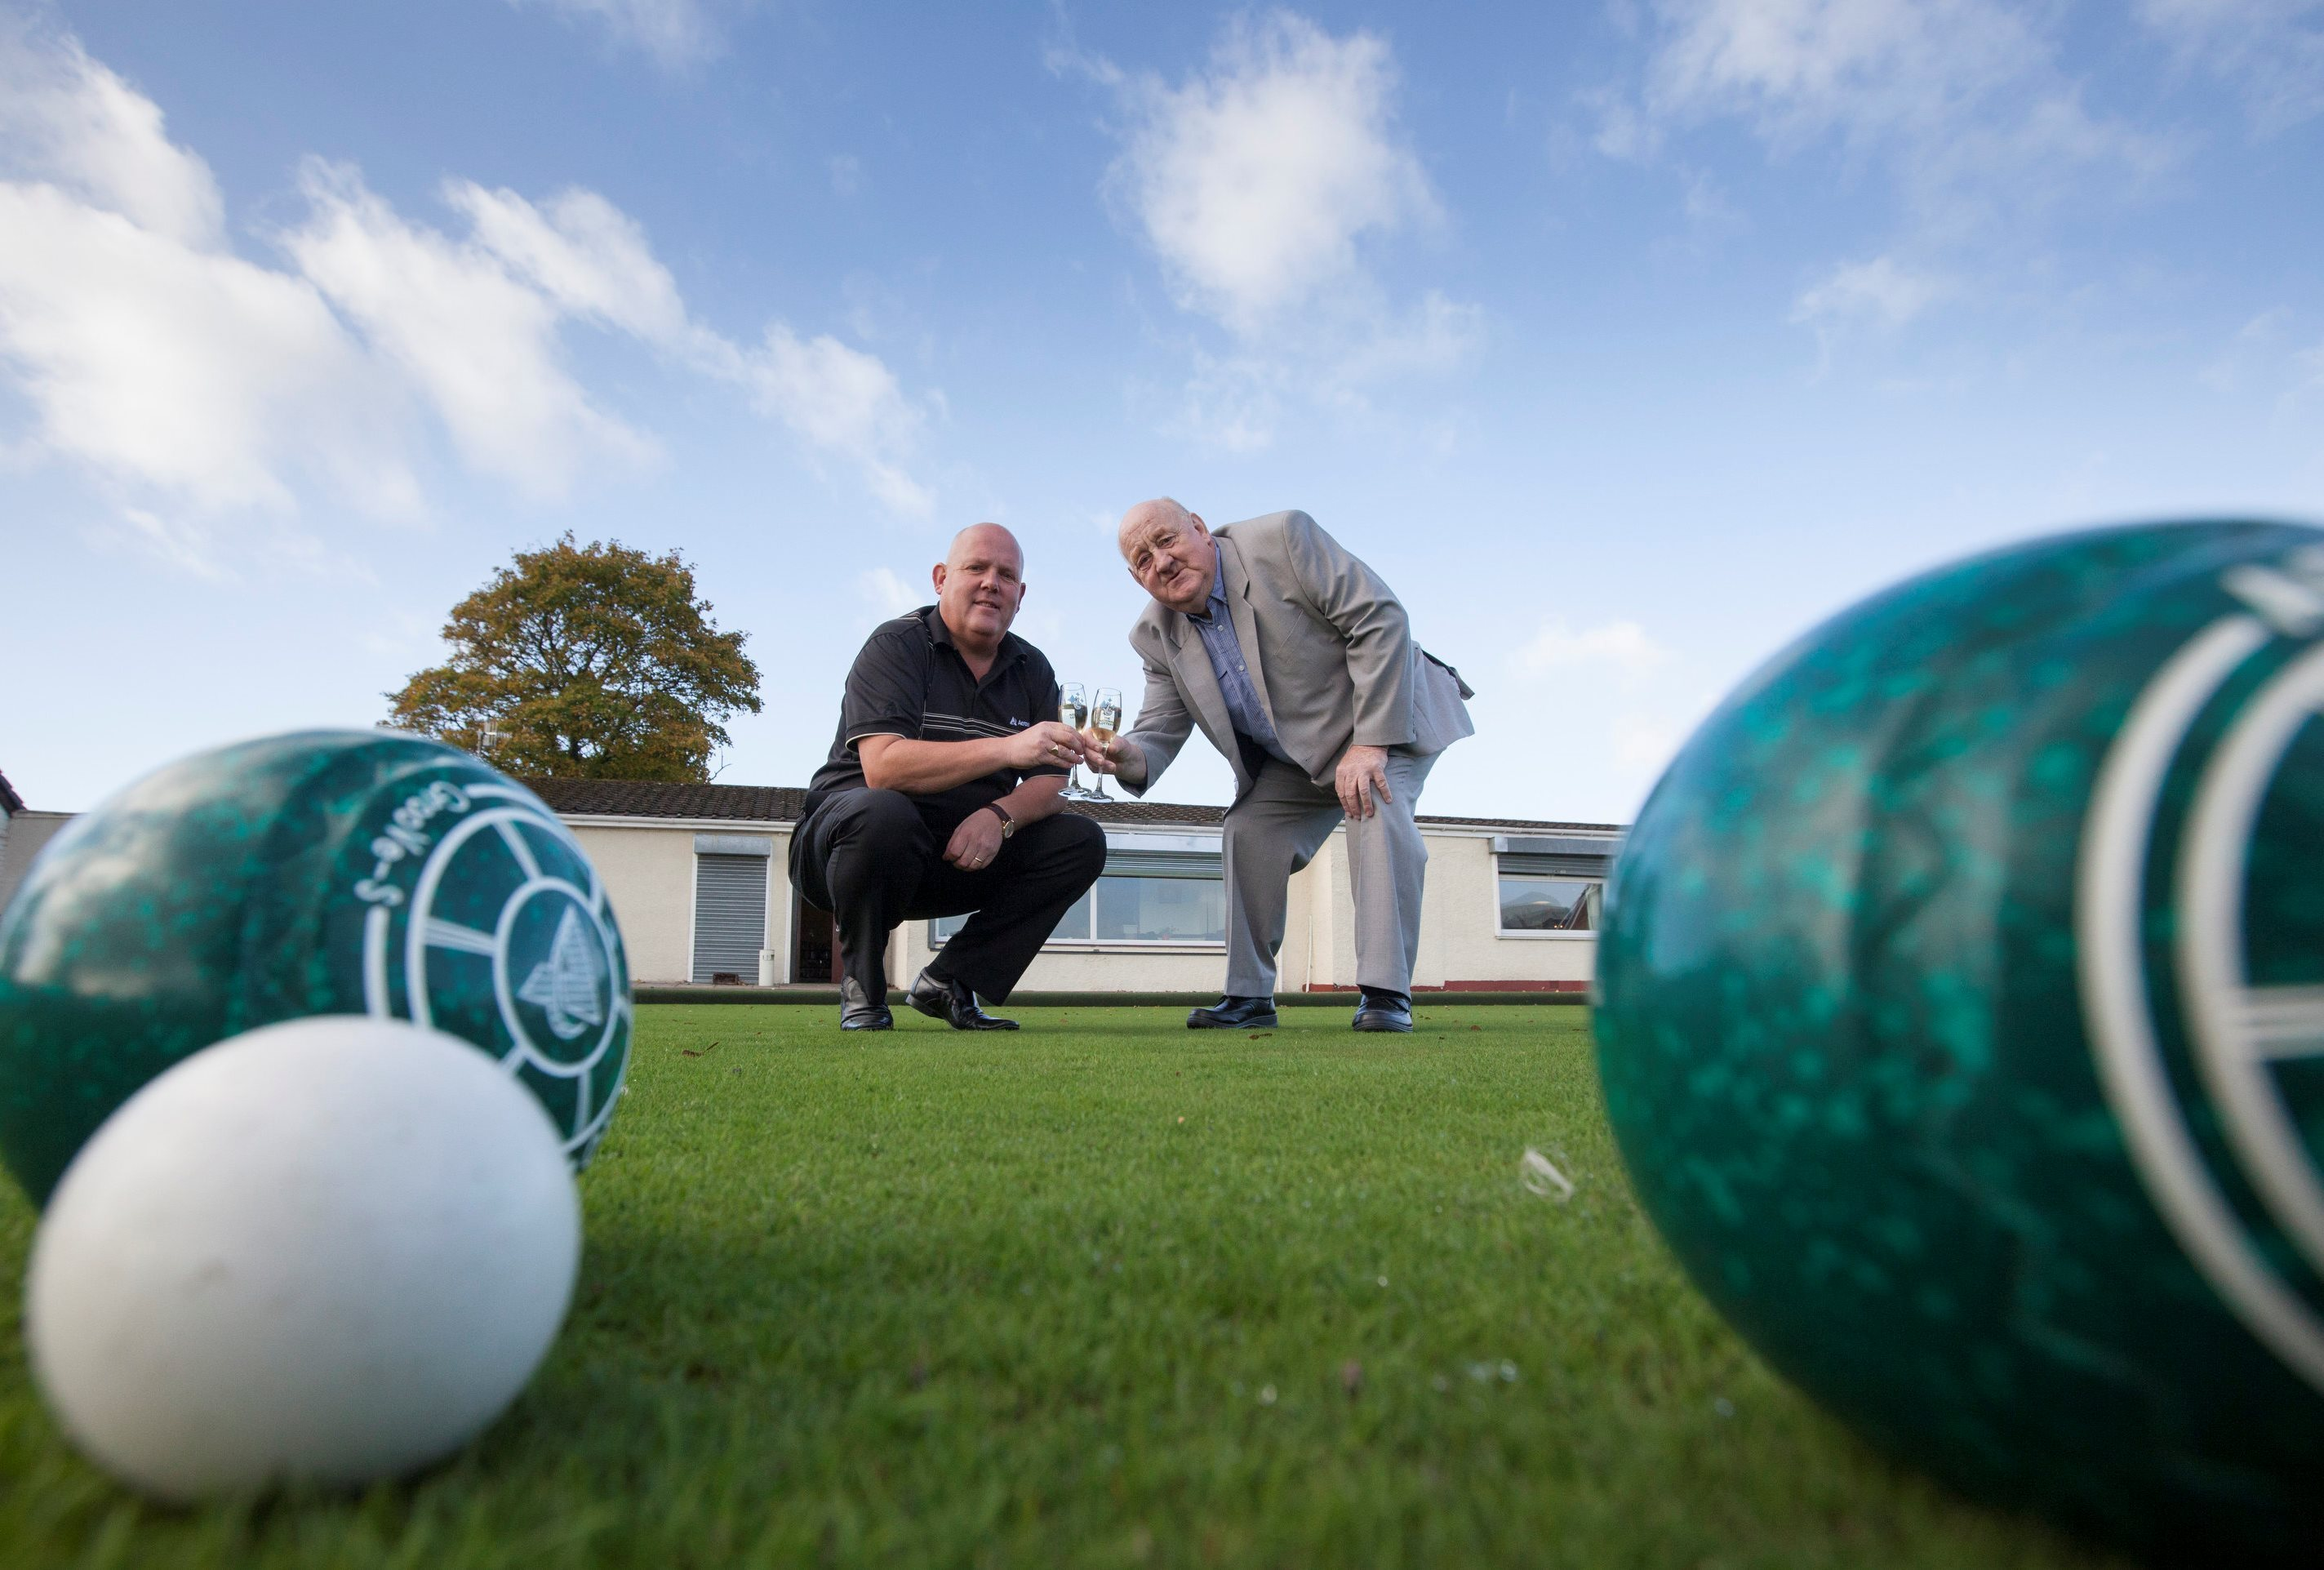 James Roy, right, from Shotts, North Lanarkshire, celebrating winning £1 million on the National Lottery with bowling legend Alex Marshall.